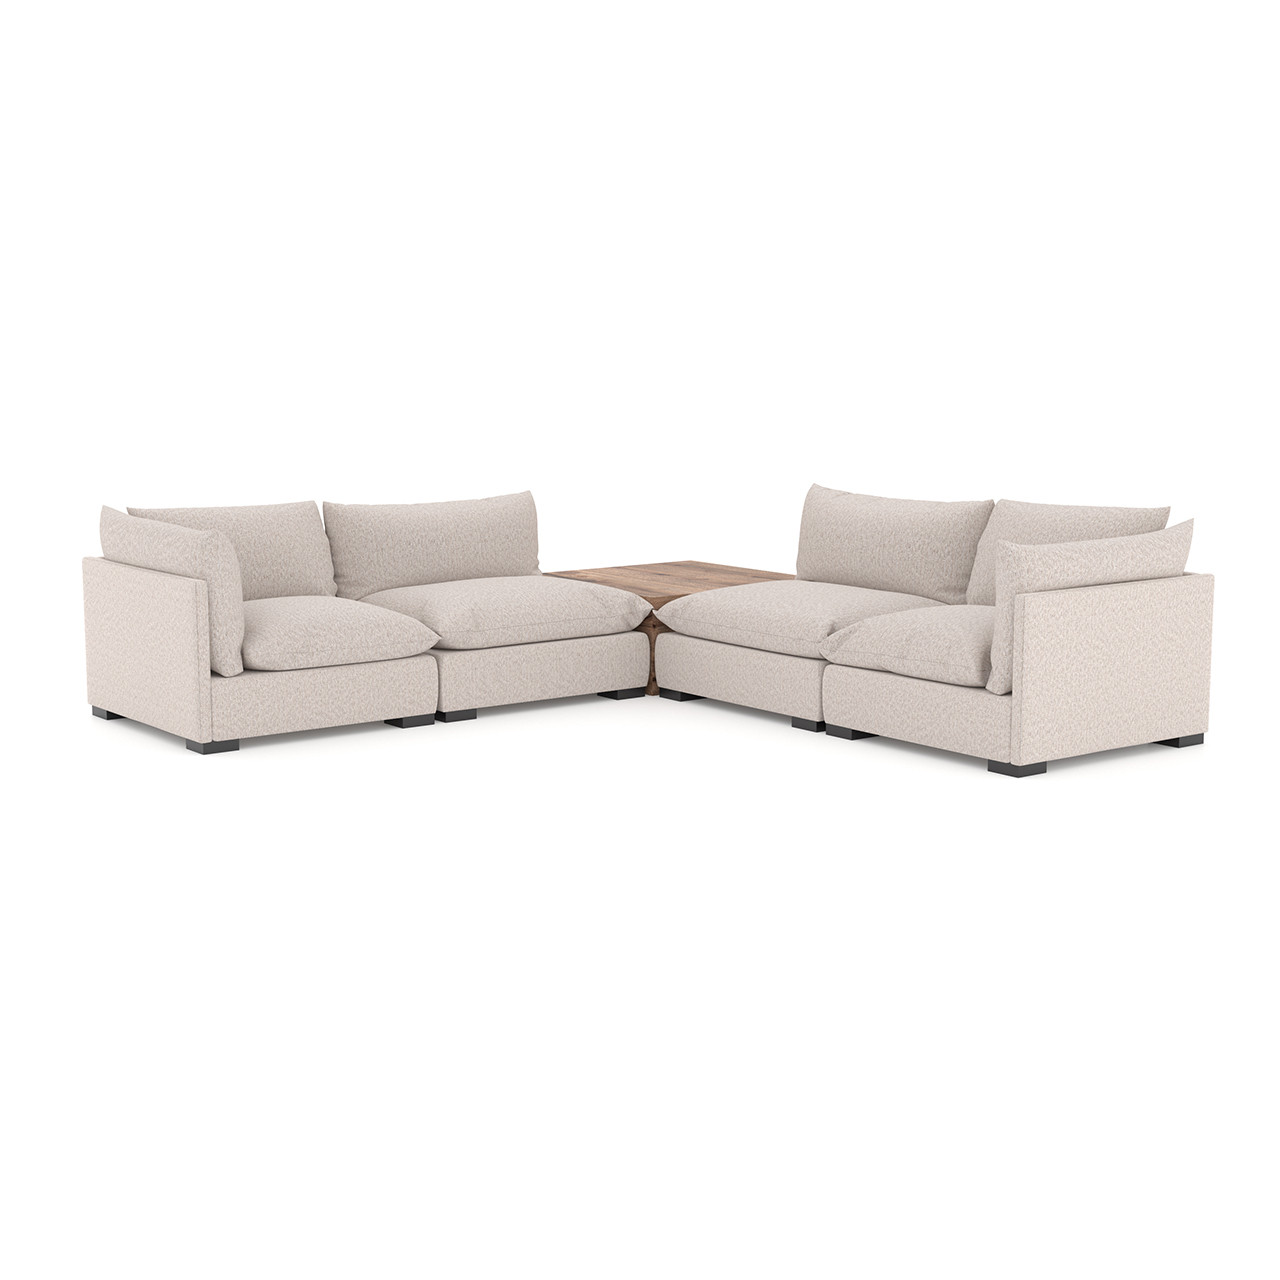 Zoe 4 Pc Sectional W/ Corner Table